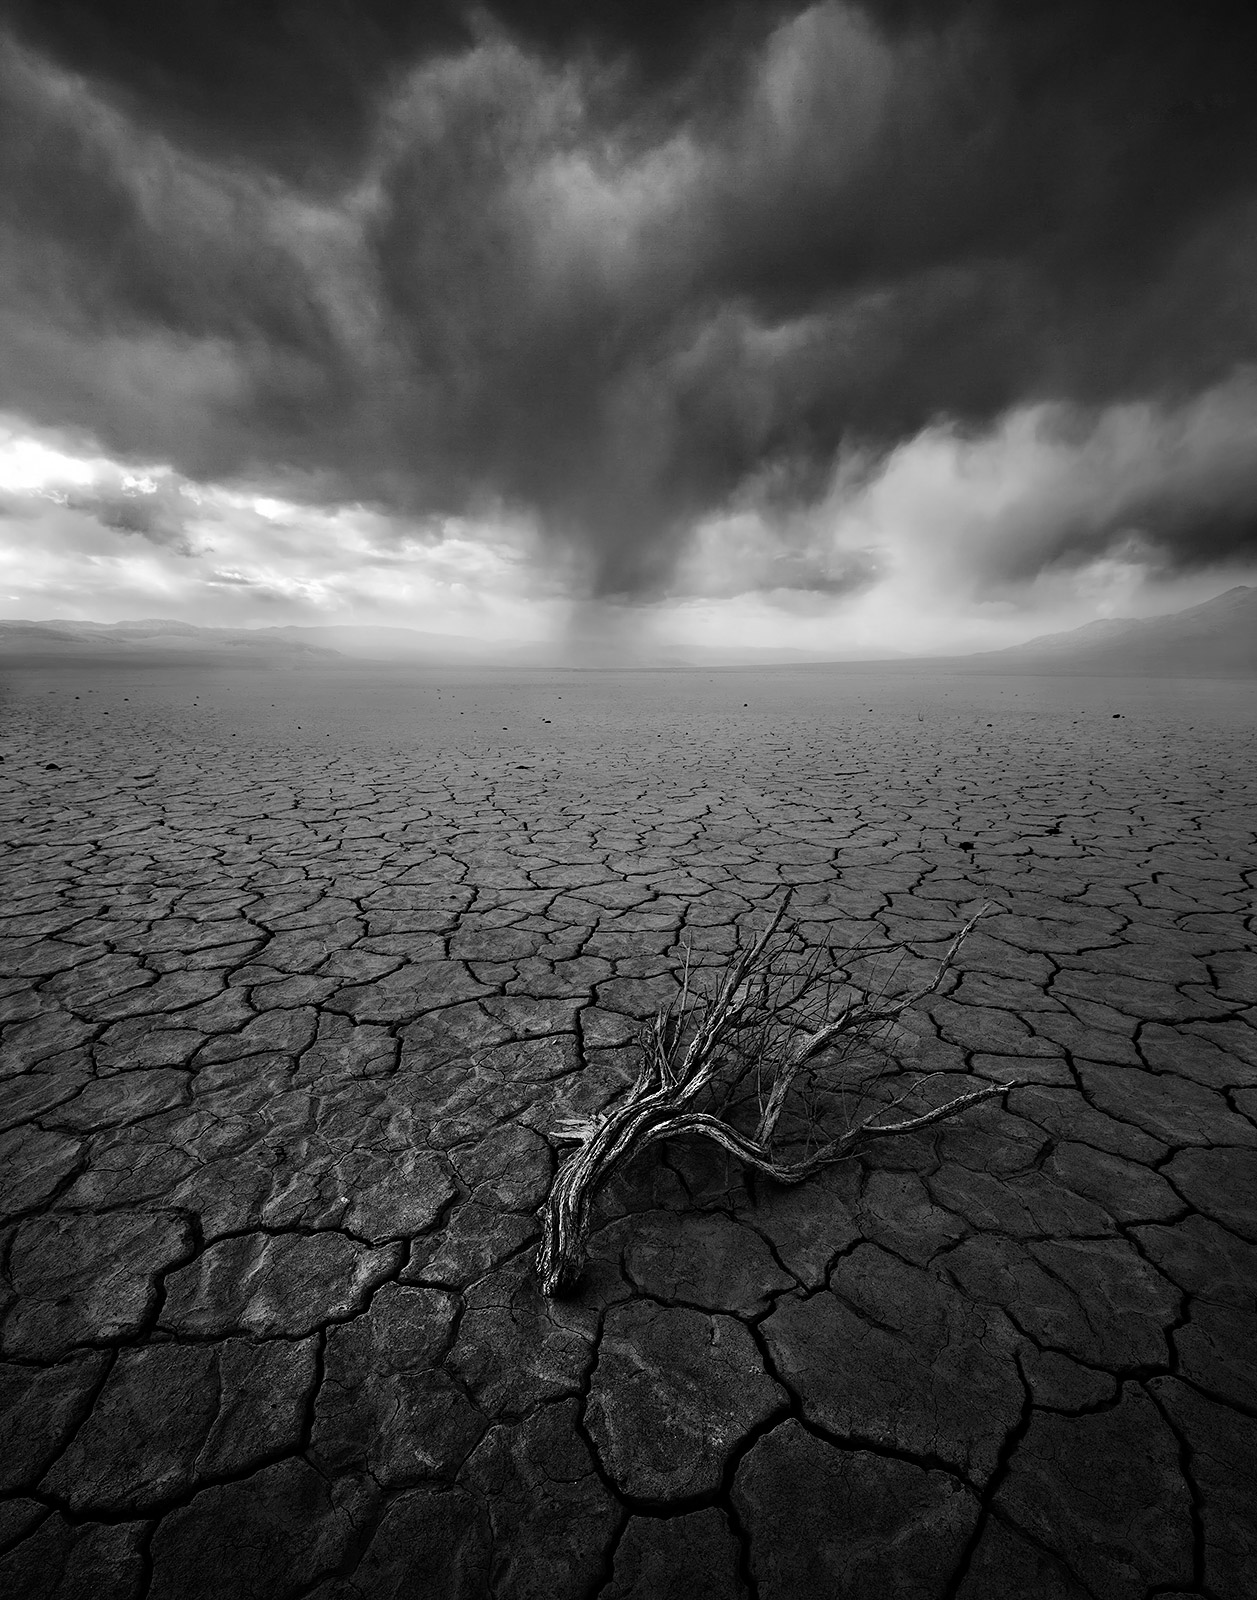 playa, cracked, stormy, lone, dead, sagebrush, death valley, photo